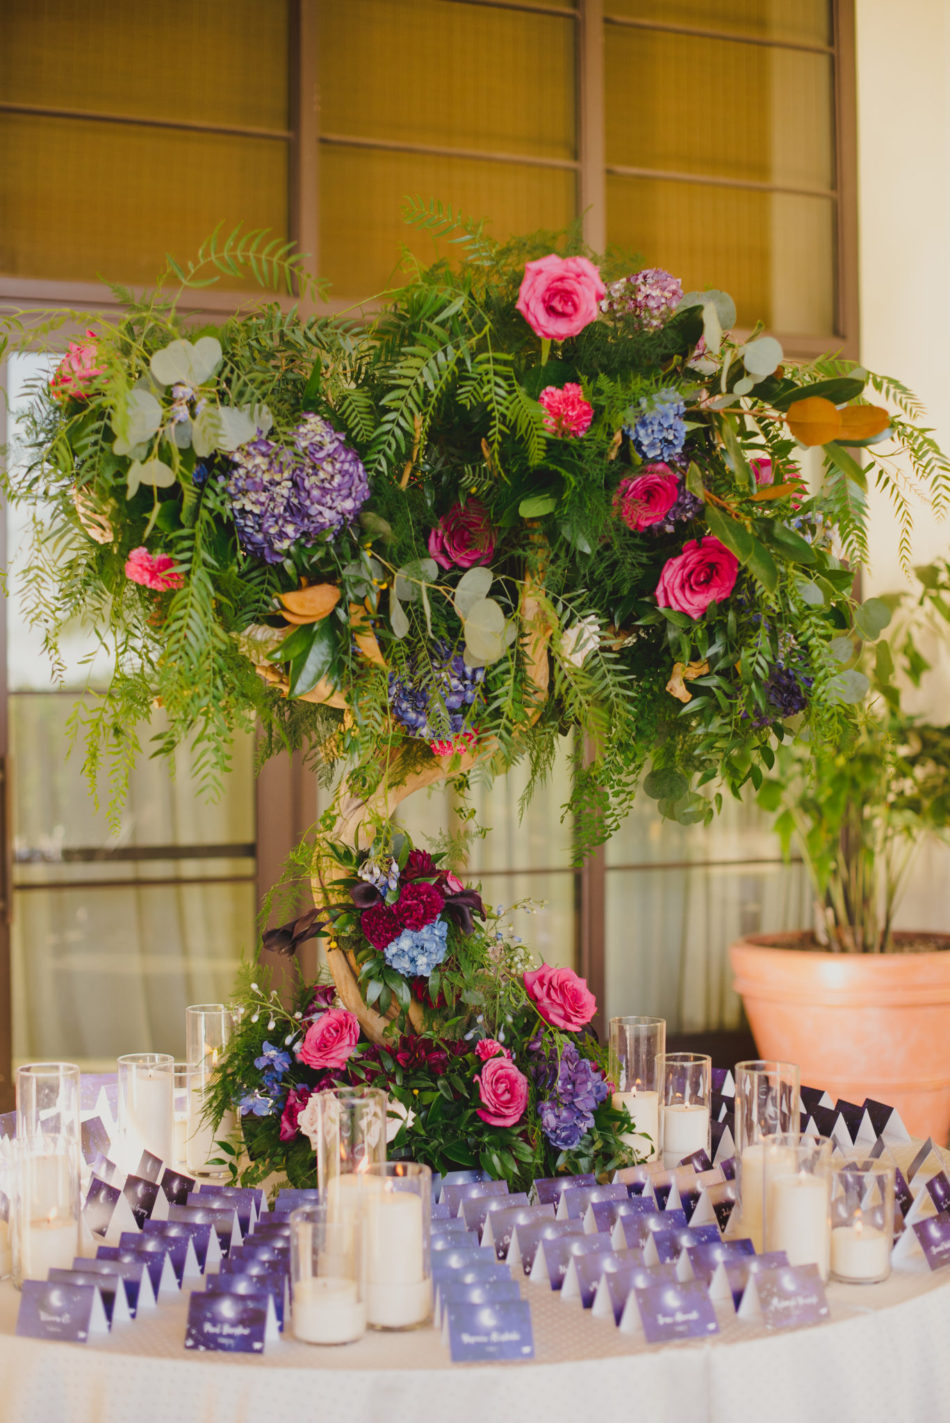 colorful escort card display, purple escort cards, vibrant oceanfront wedding, floral design, florist, wedding florist, wedding flowers, orange county weddings, orange county wedding florist, orange county florist, orange county floral design, flowers by cina